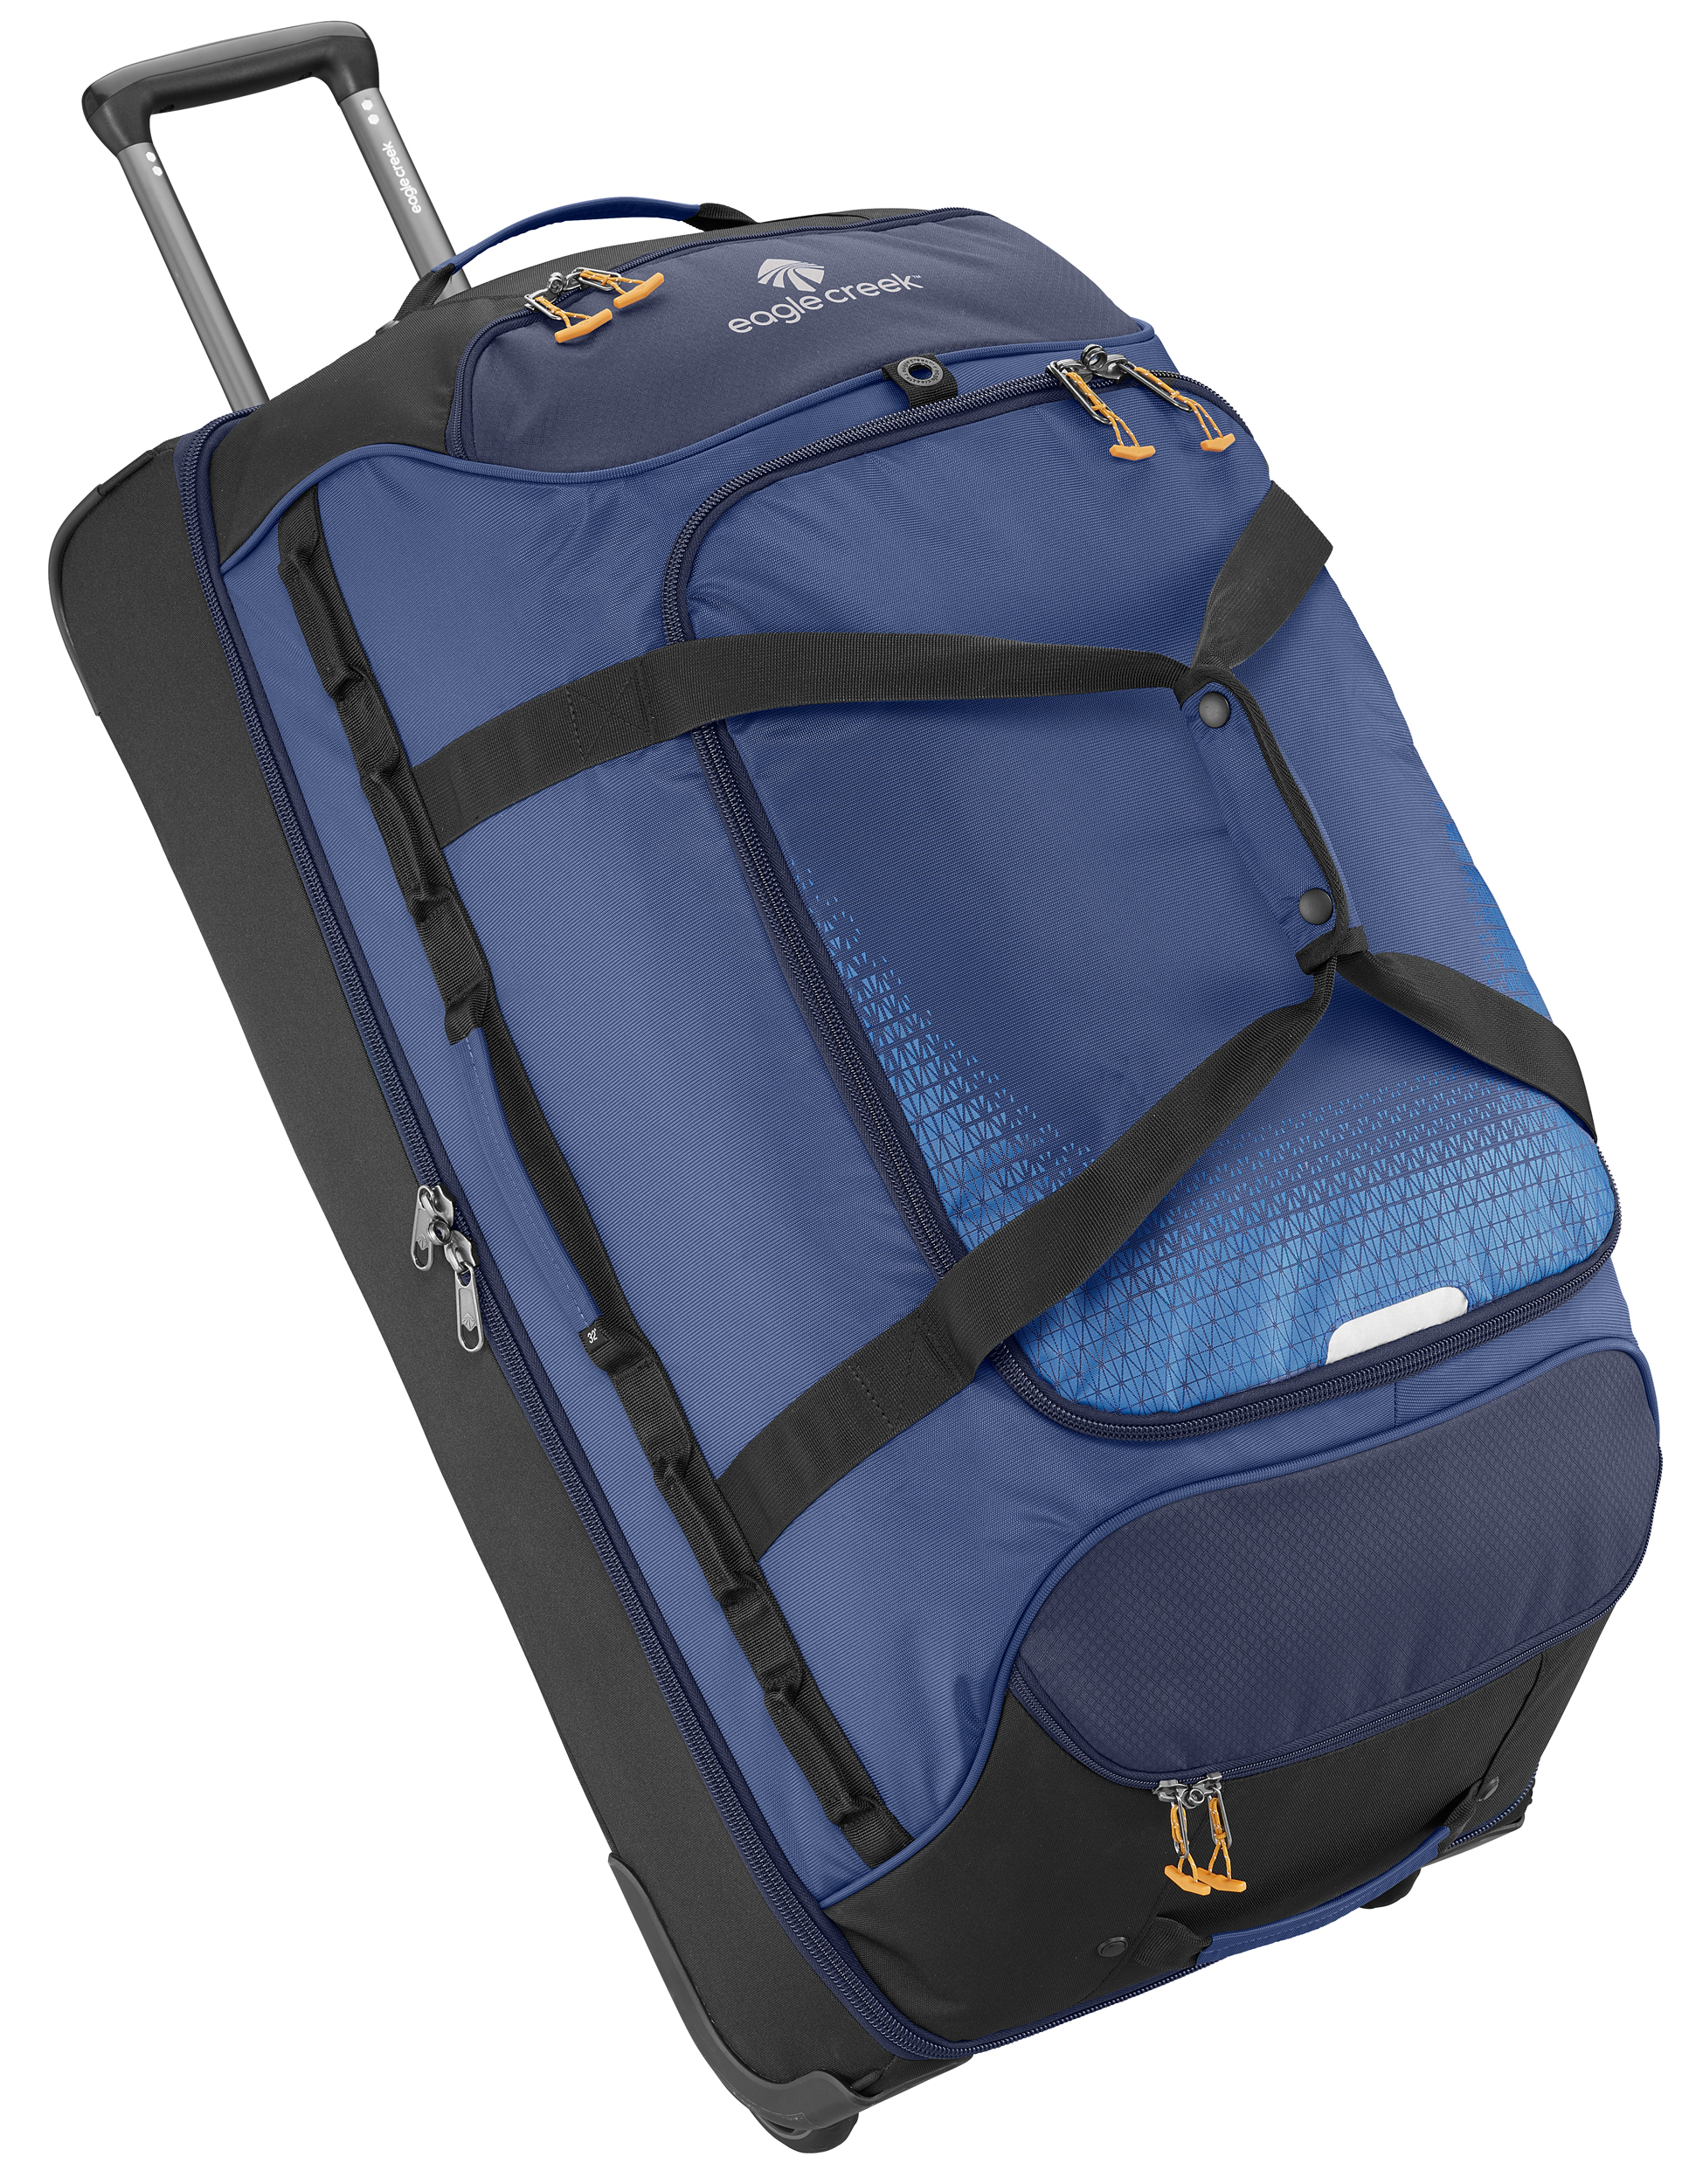 Expanse™ Drop Bottom Wheeled Duffel 32 by Eagle Creek (Color: Twilight Blue)